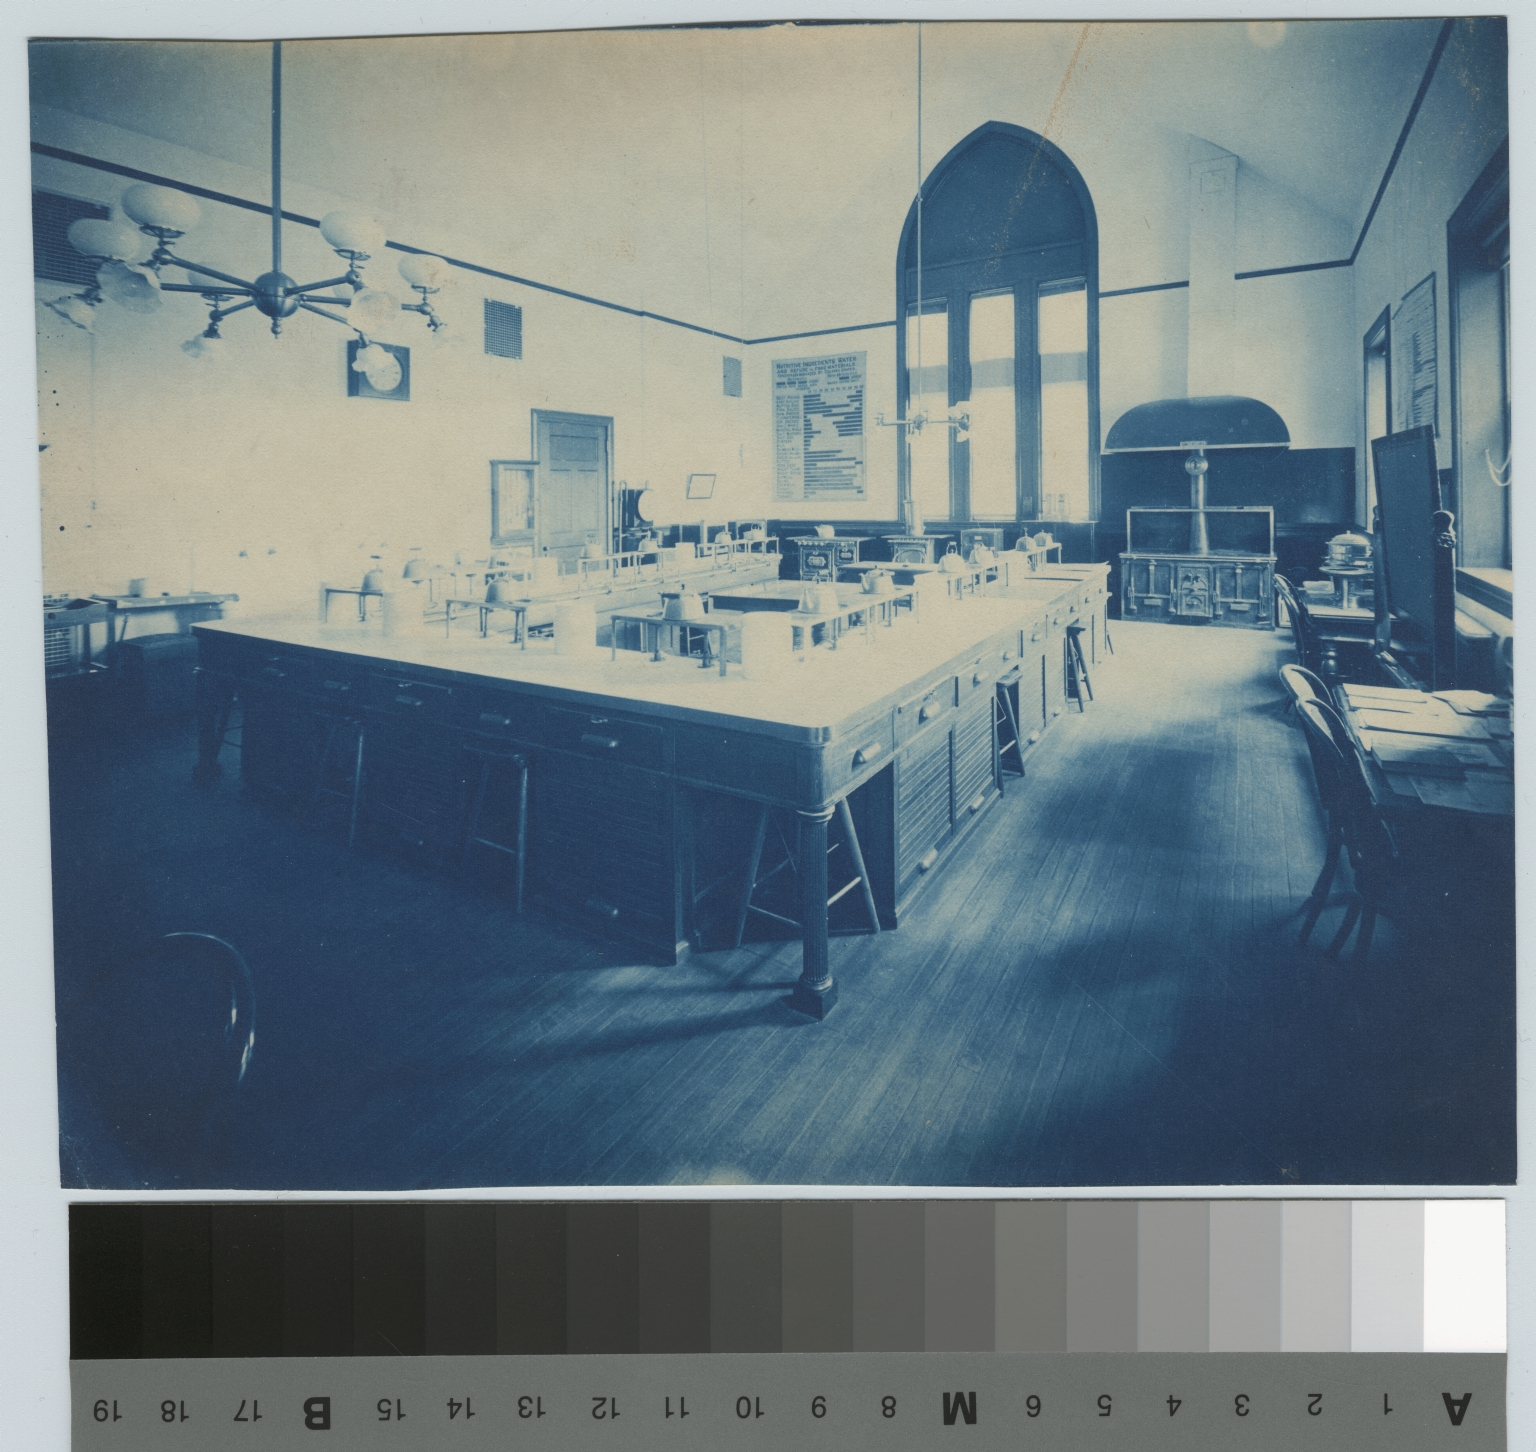 Domestic Science laboratory, Rochester Athenaeum and Mechanics Institute [1901-1915]